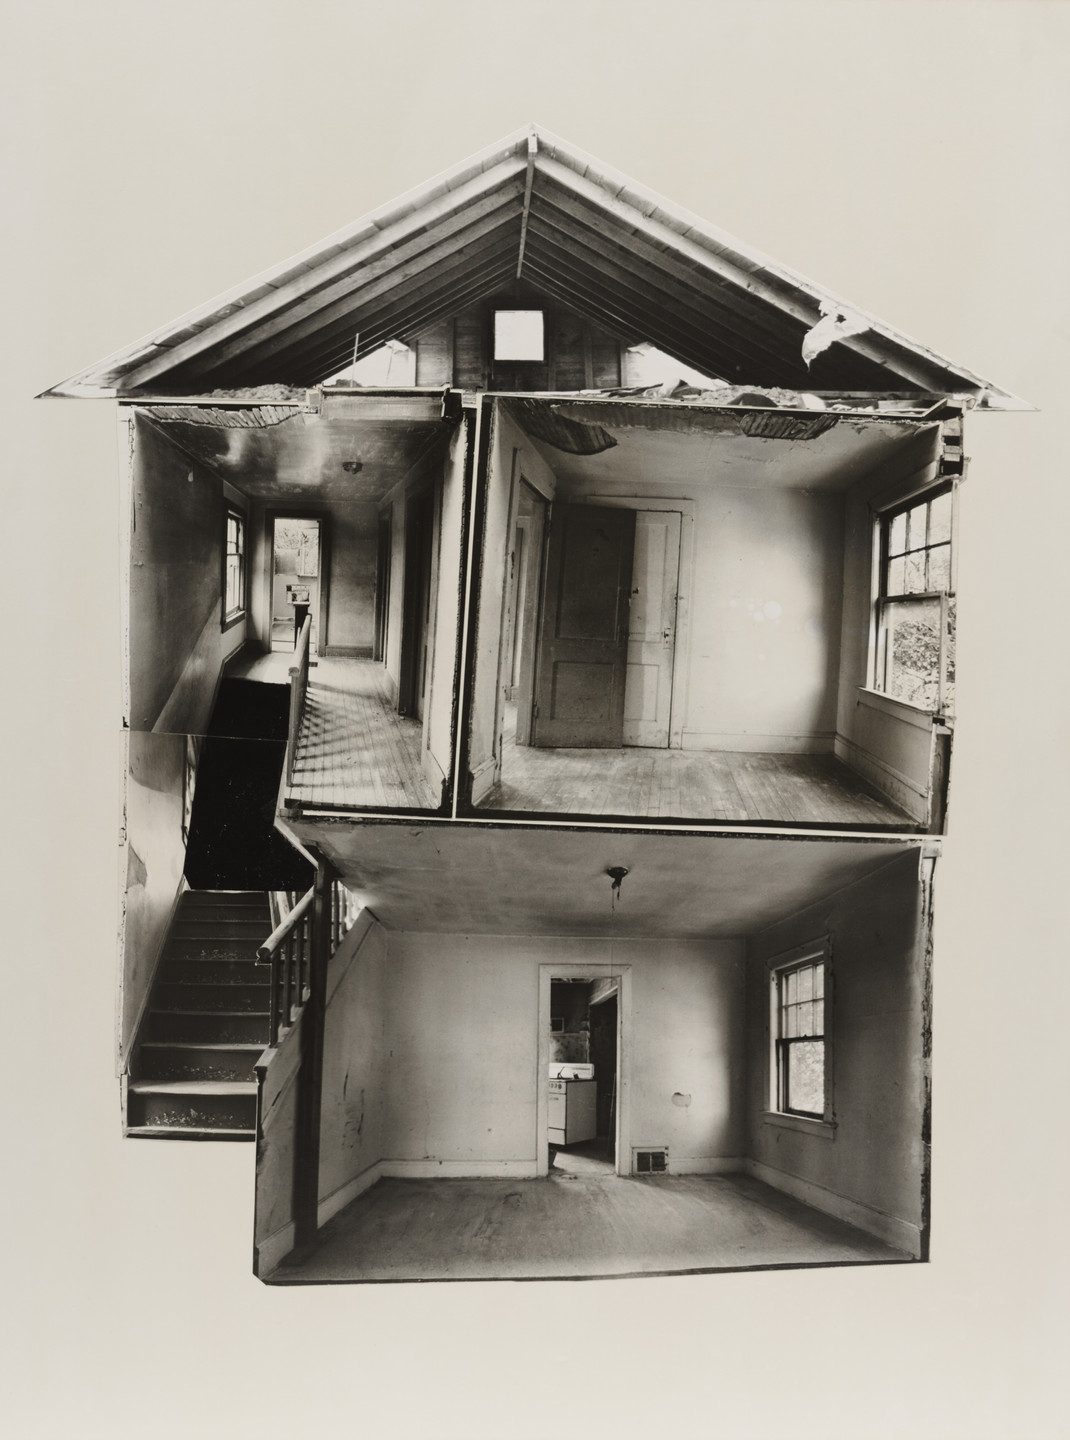 Gordon Matta-Clark. Splitting. 1974